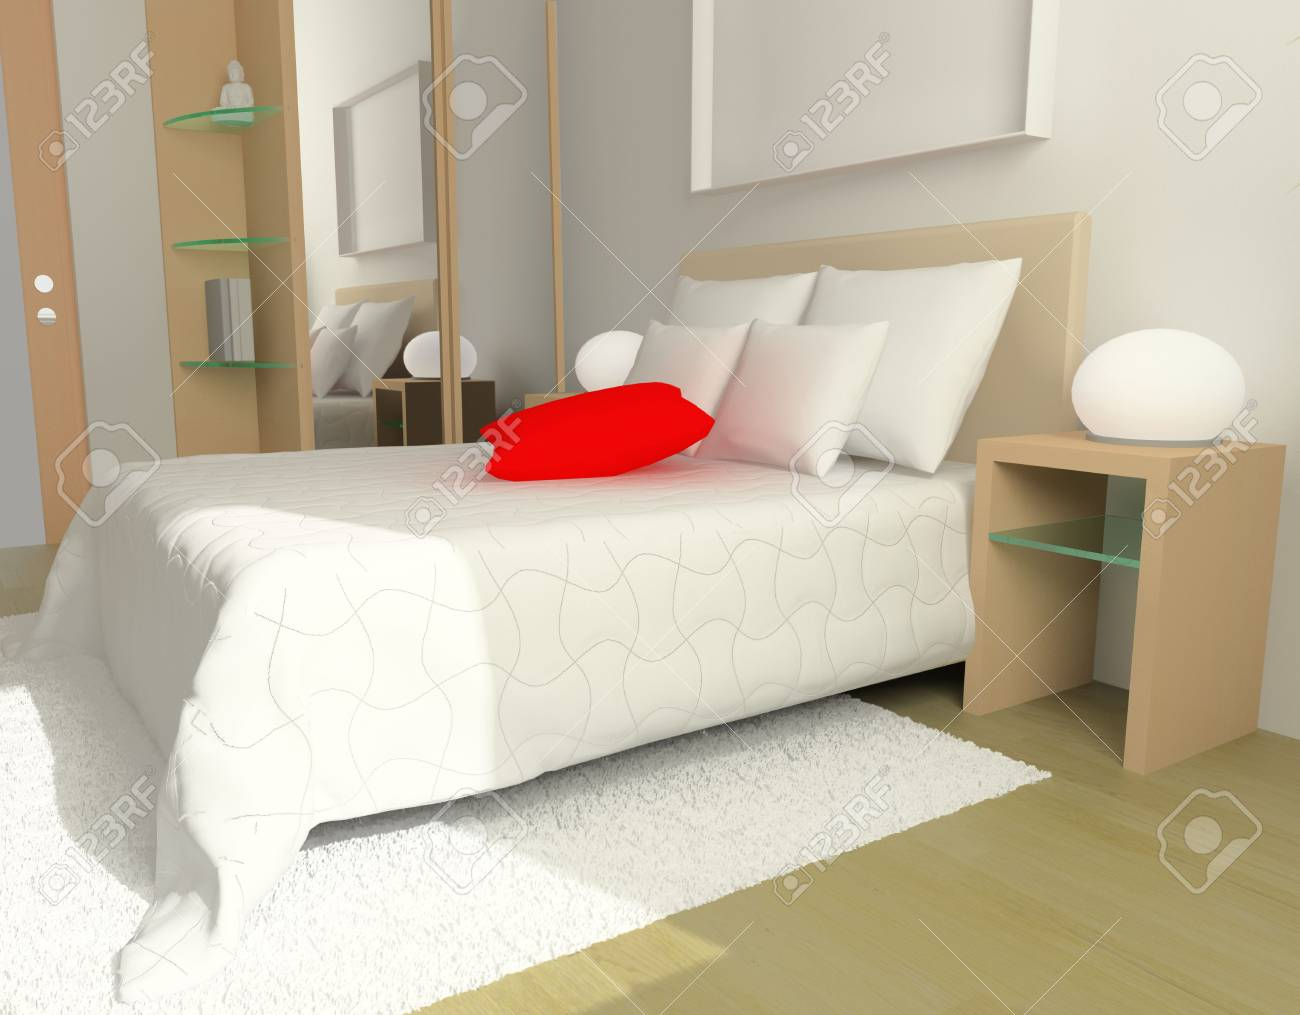 Interior of a sleeping room 3d render Stock Photo - 3246432